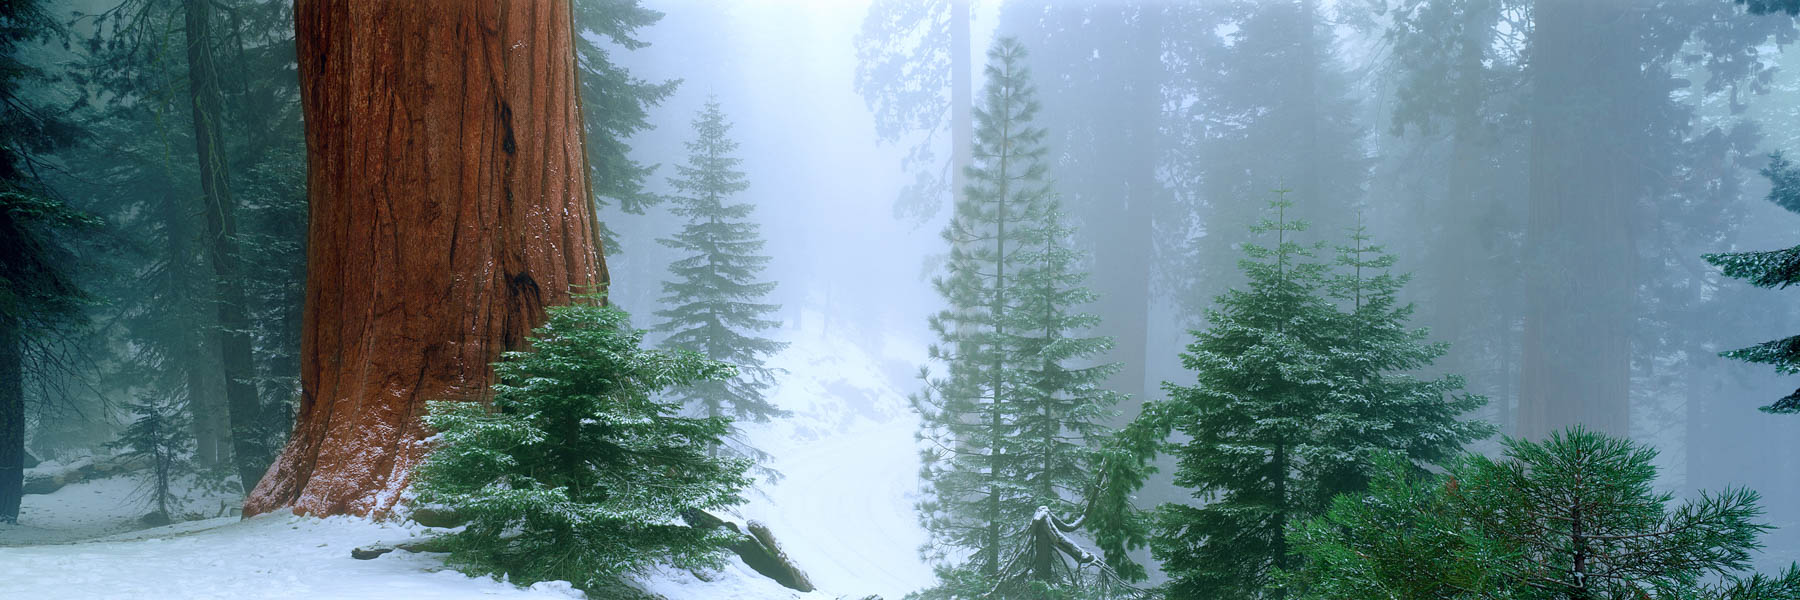 Giant sequia trees in mist and snow, California, USA.